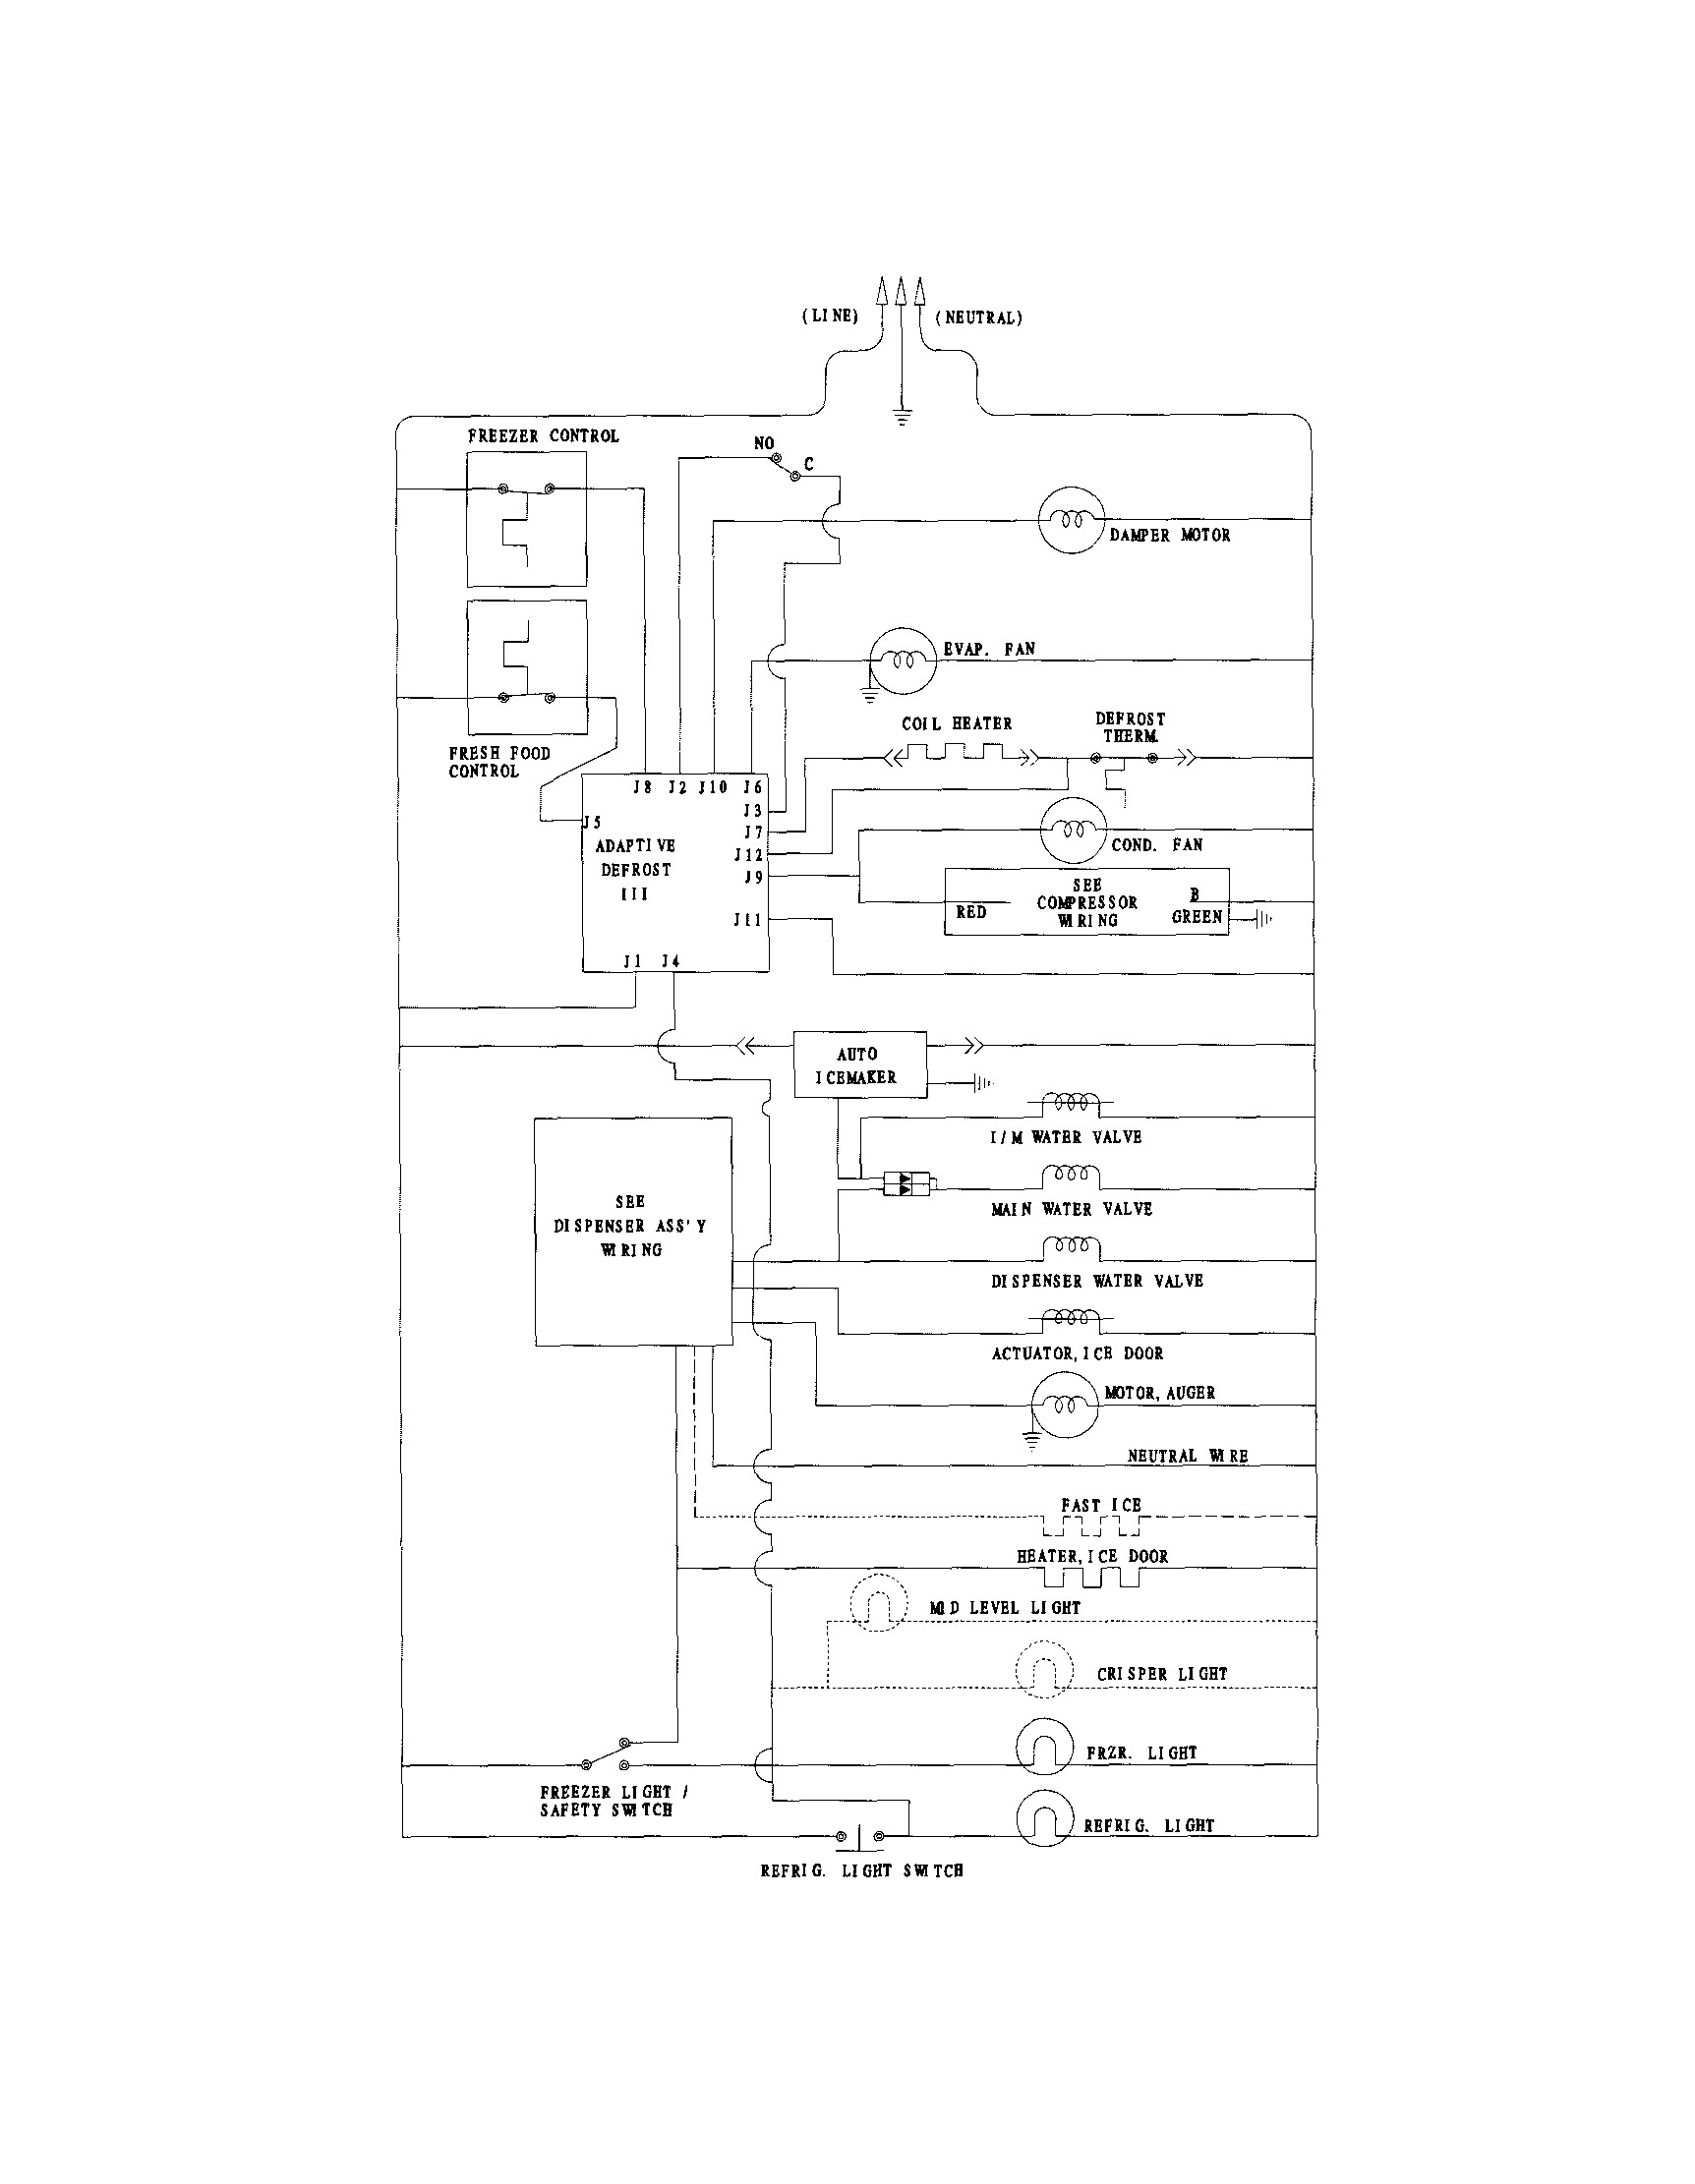 hight resolution of frigidaire ice maker wiring diagram wemo maker wiring diagram buy wemo maker printable wiring diagrams whirlpool refrigerator